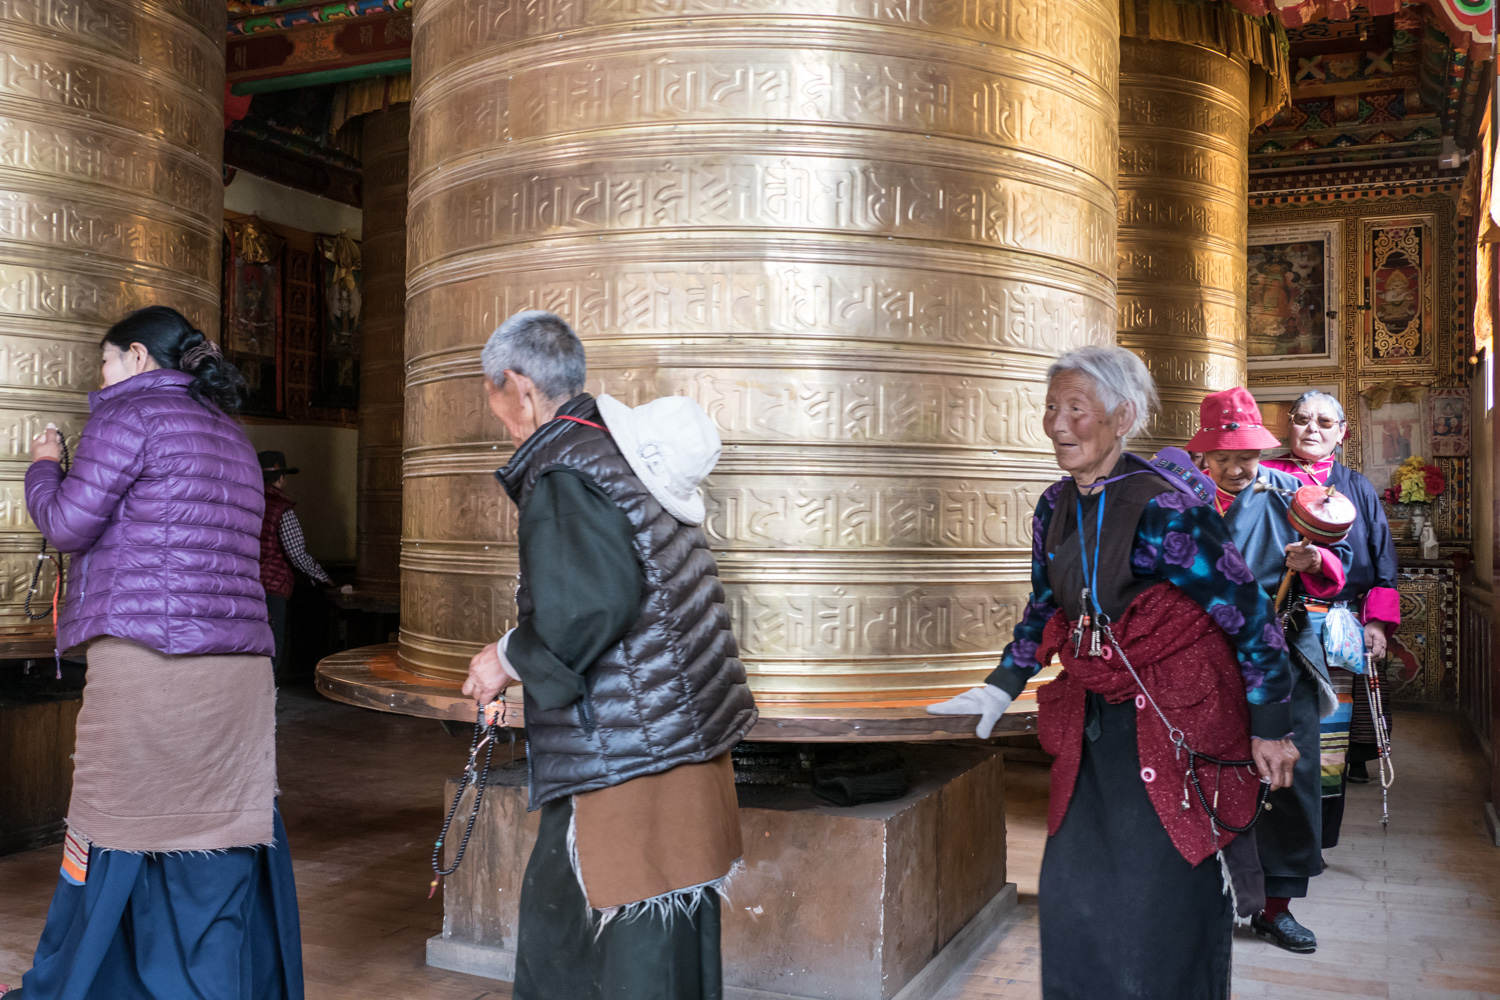 A room with four giant prayer wheels and many devout Buddhists